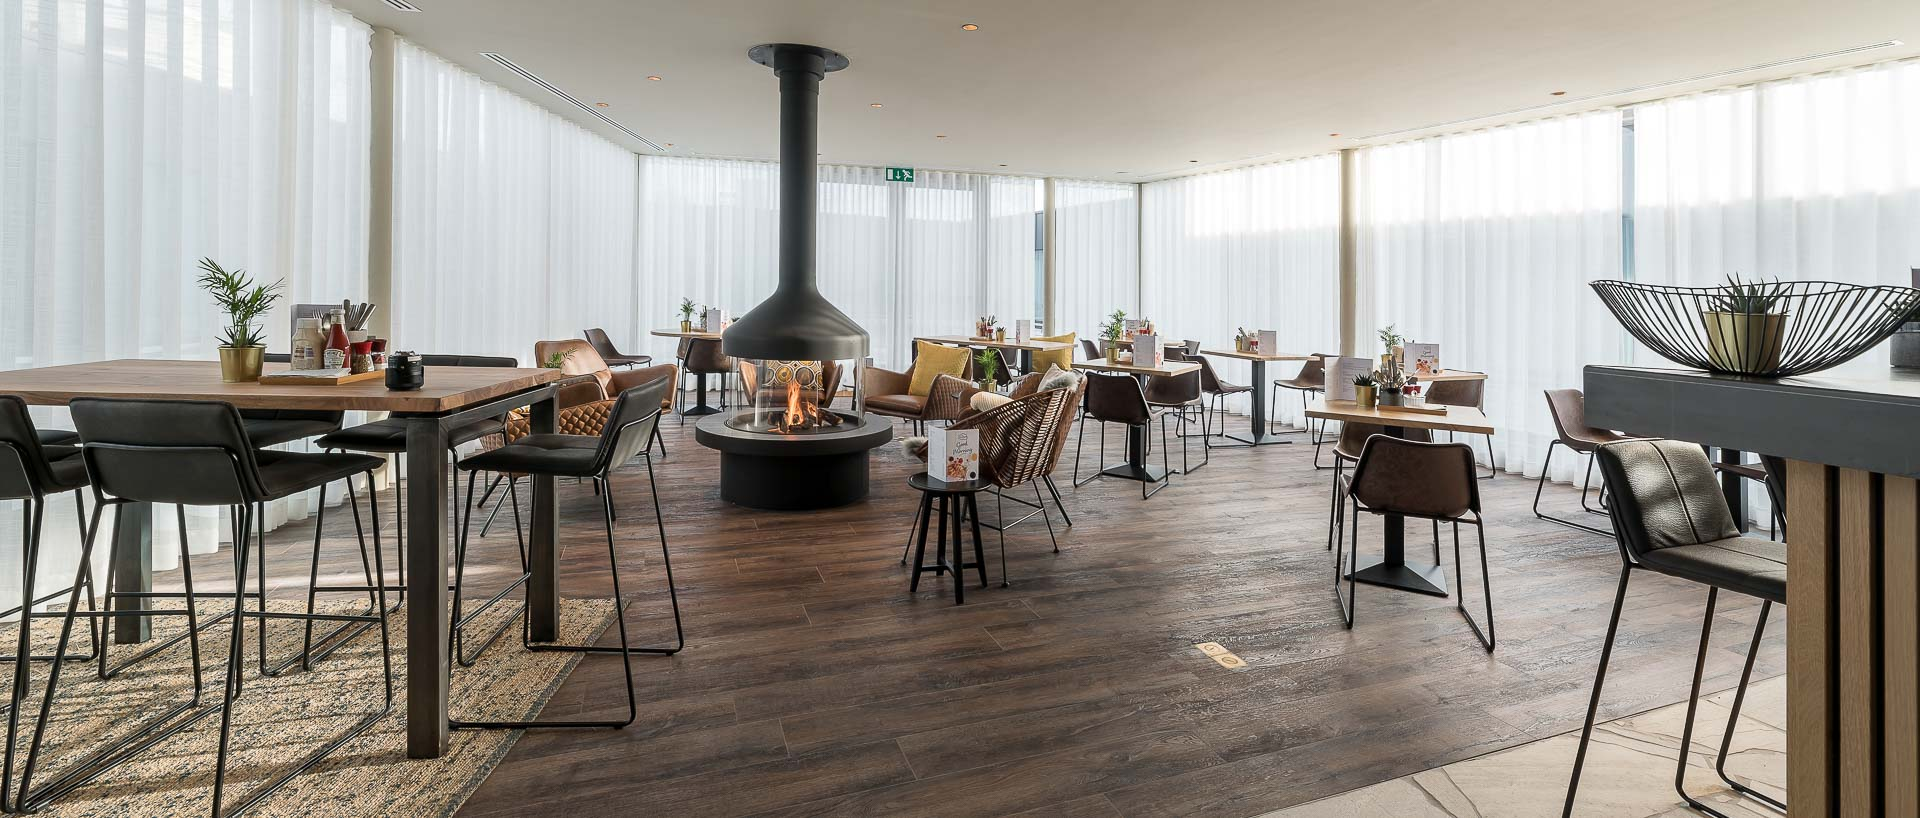 Food Cafe PREMIER SUITES PLUS Antwerp